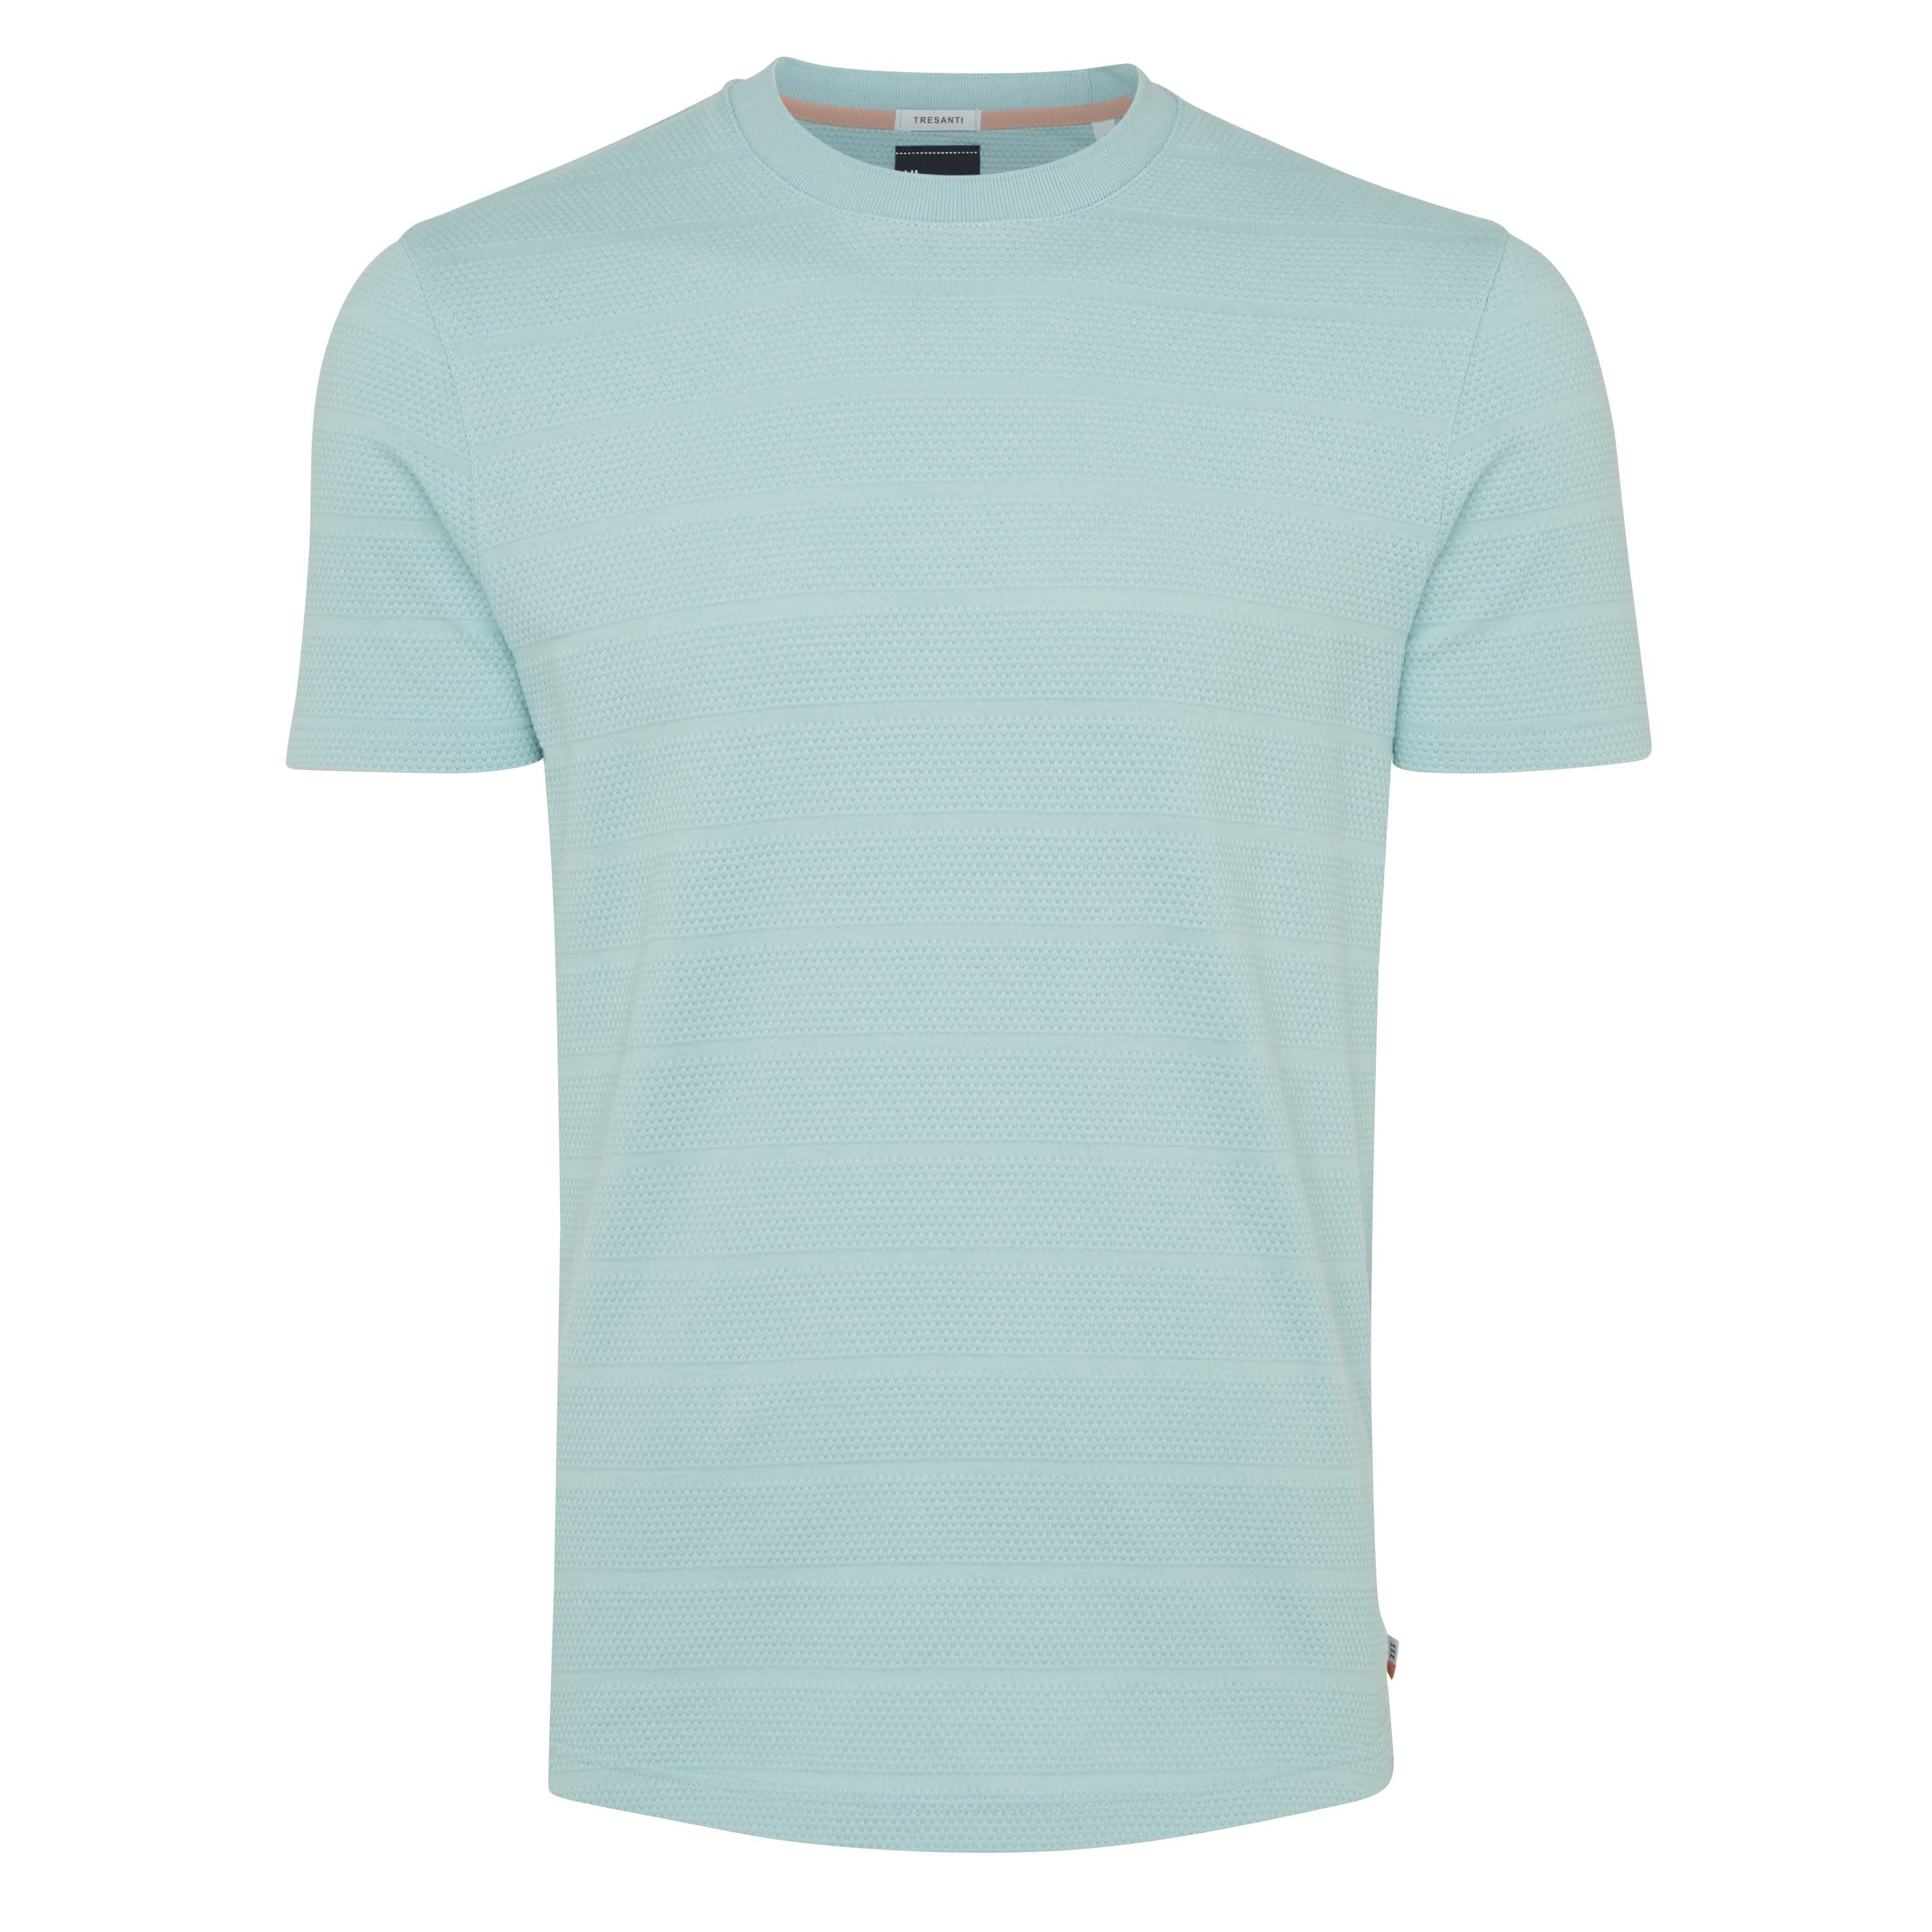 Tony | T-shirt structure mint green